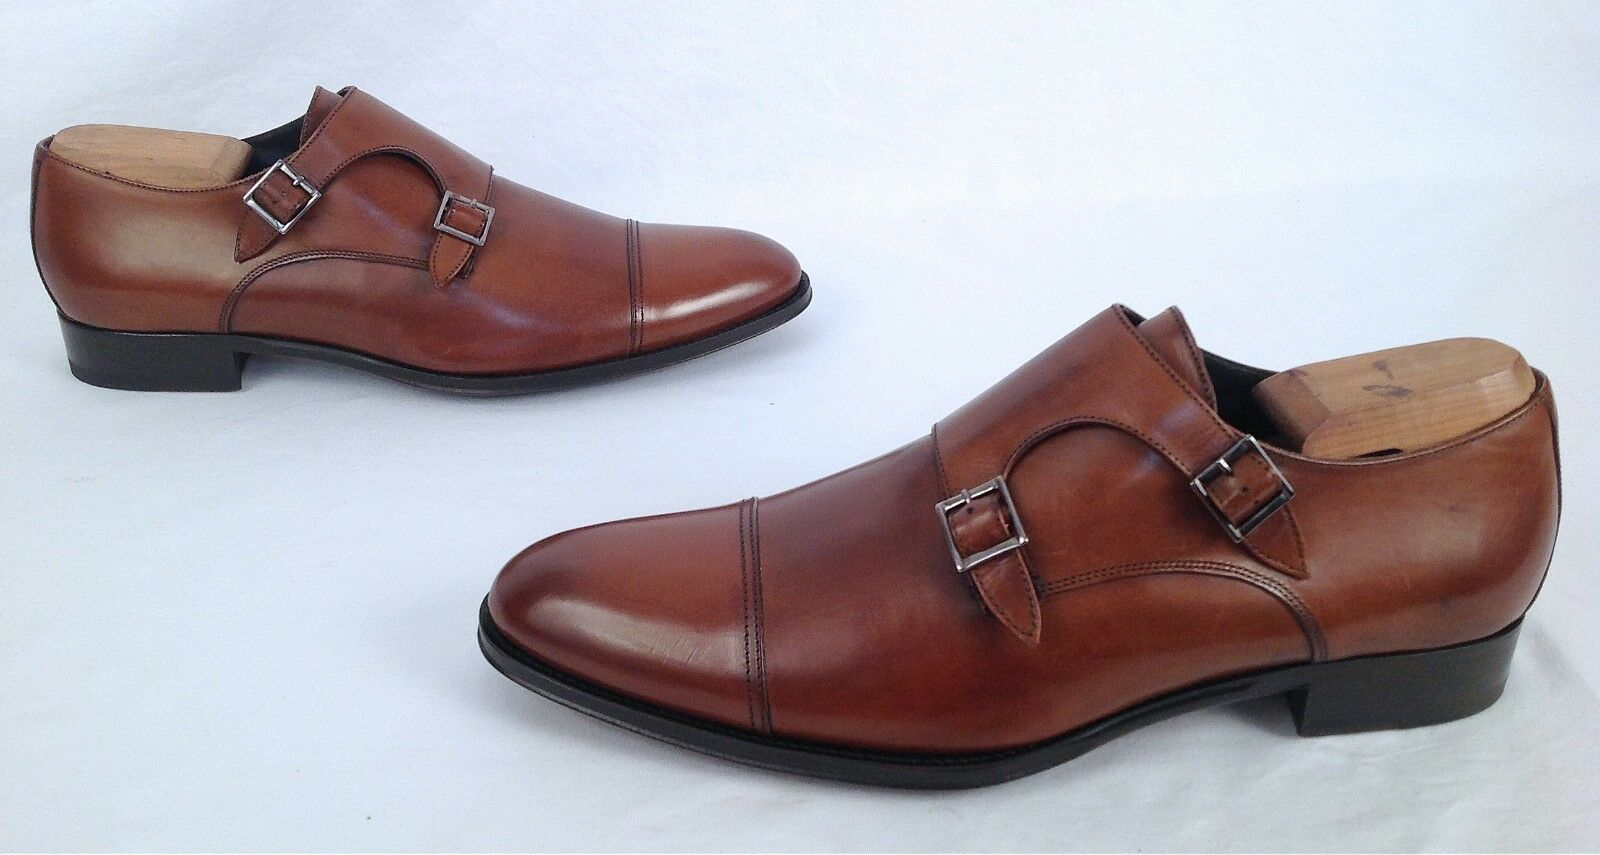 NEW!! To Boot New York Monk 'Medford' Monk York Strap- Cognac- Size 10.5M-  399 d4352d